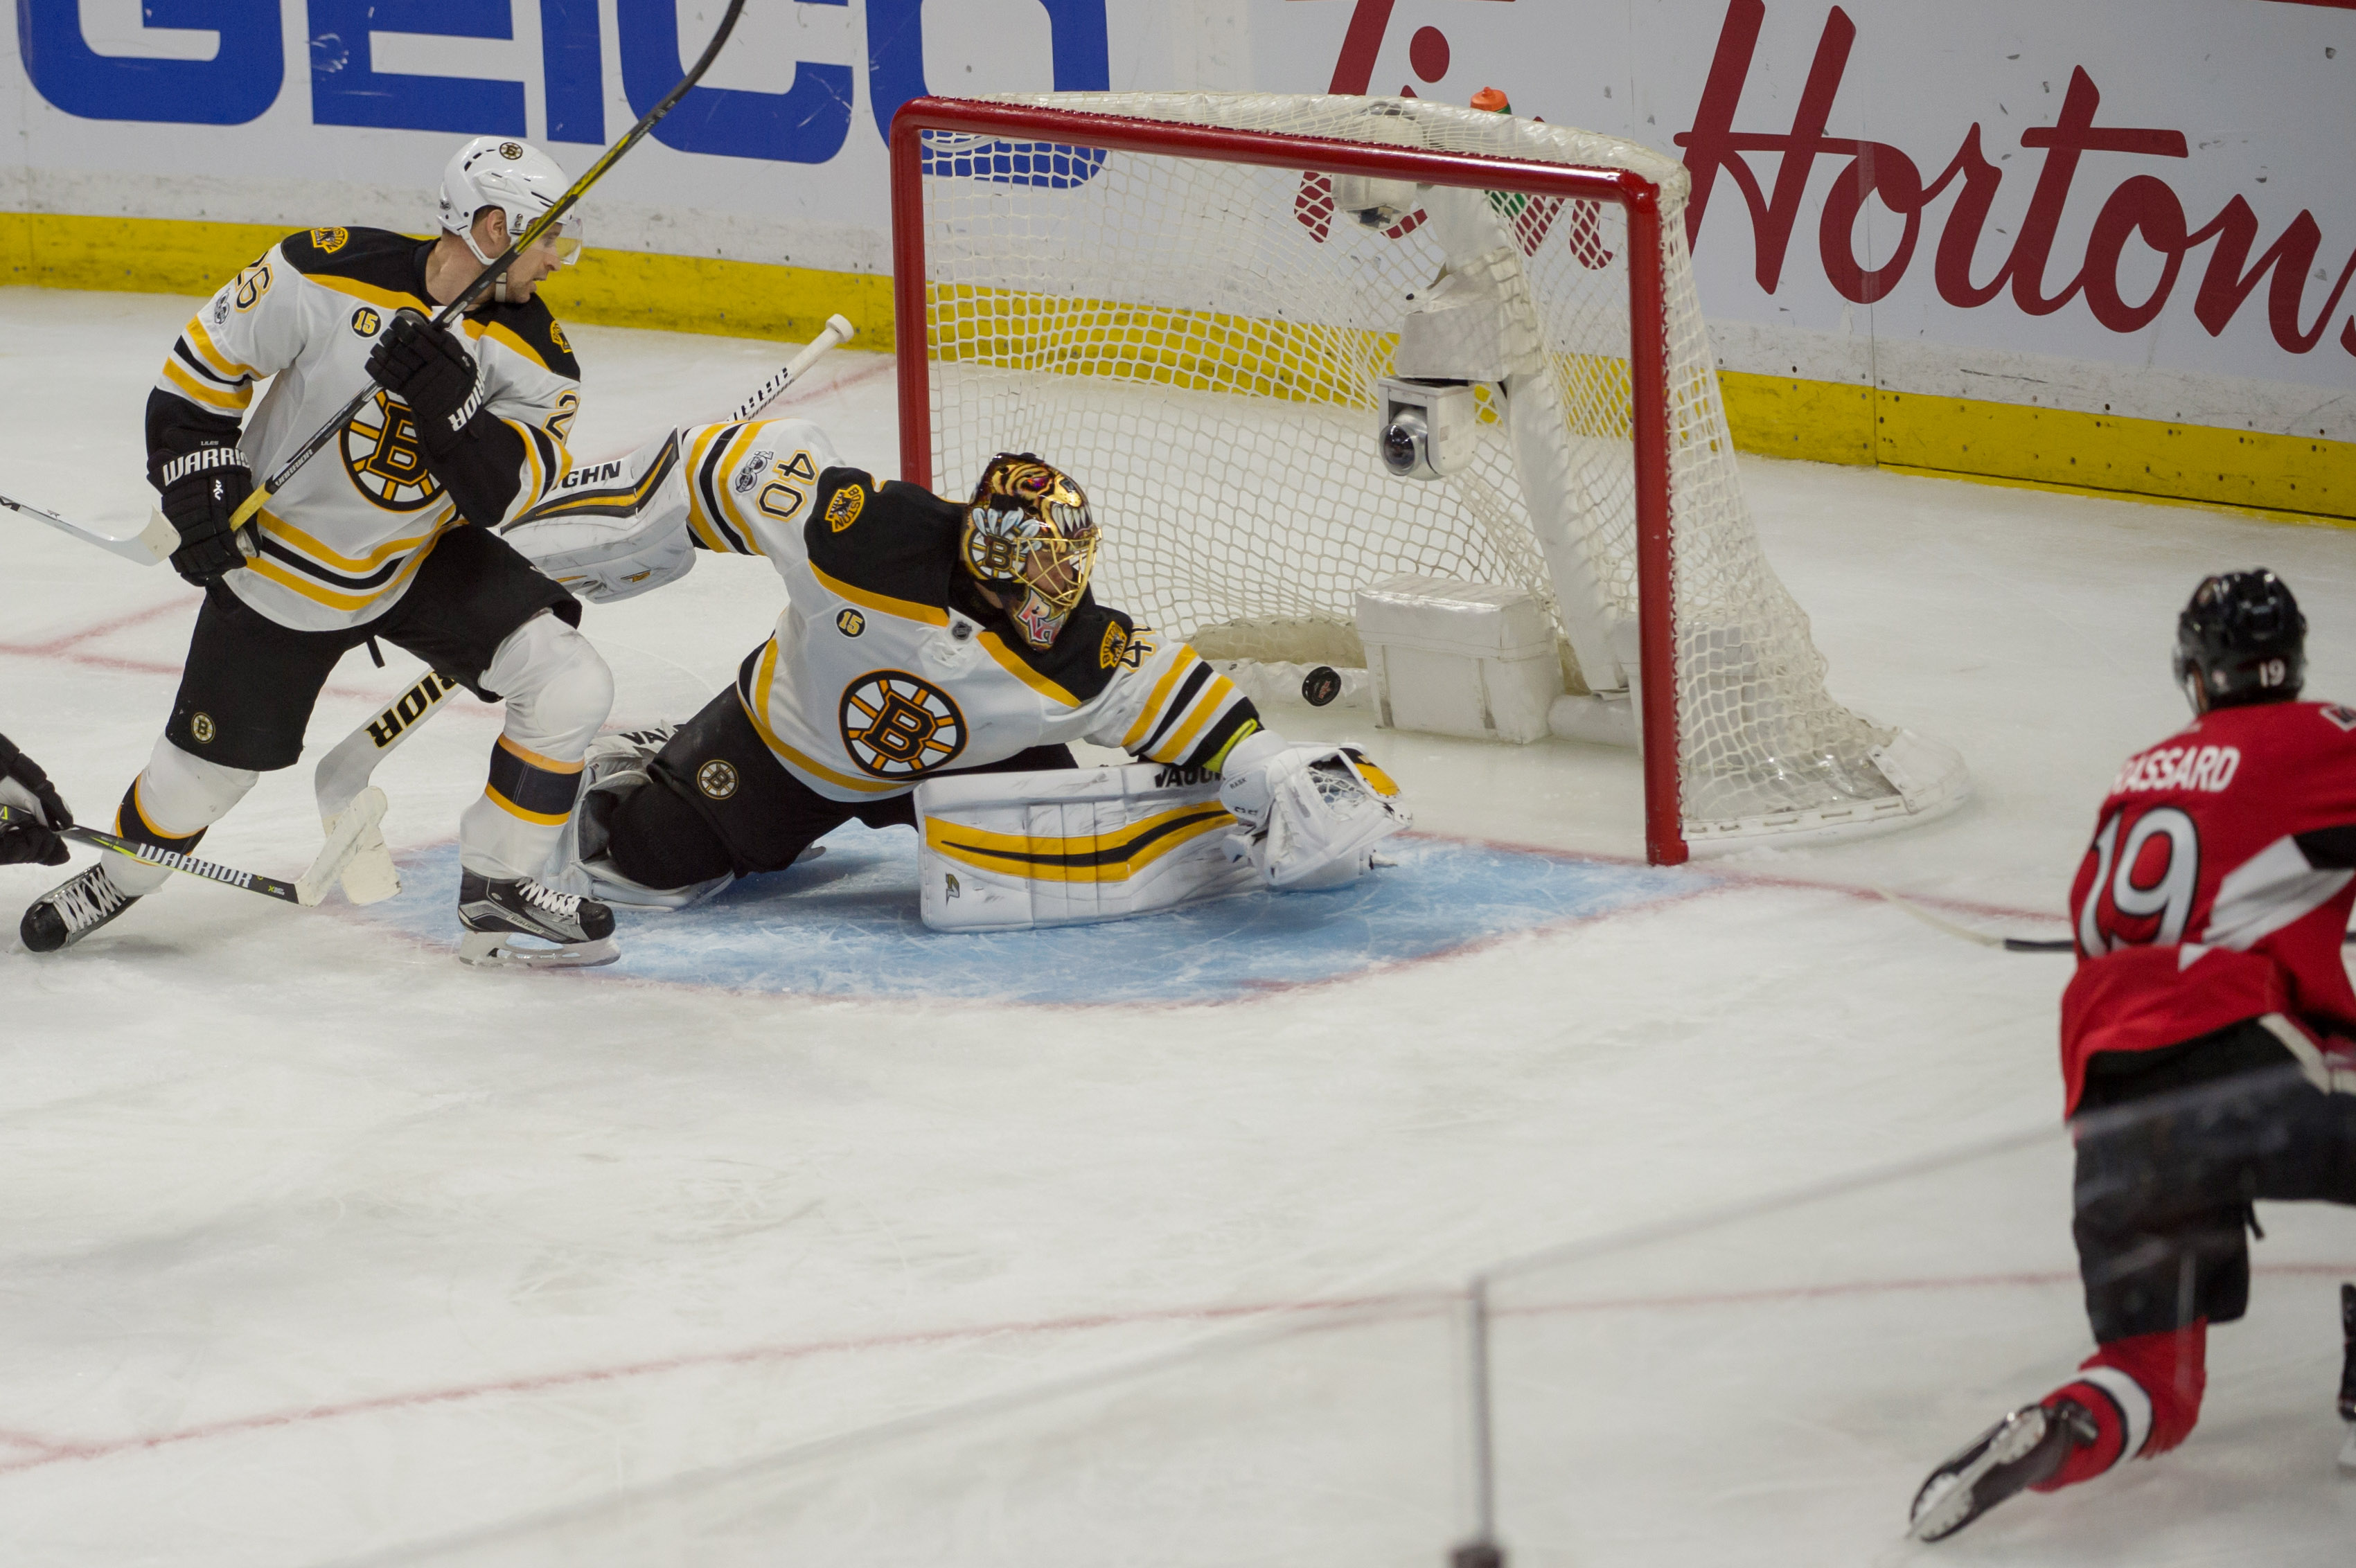 10014330-nhl-boston-bruins-at-ottawa-senators